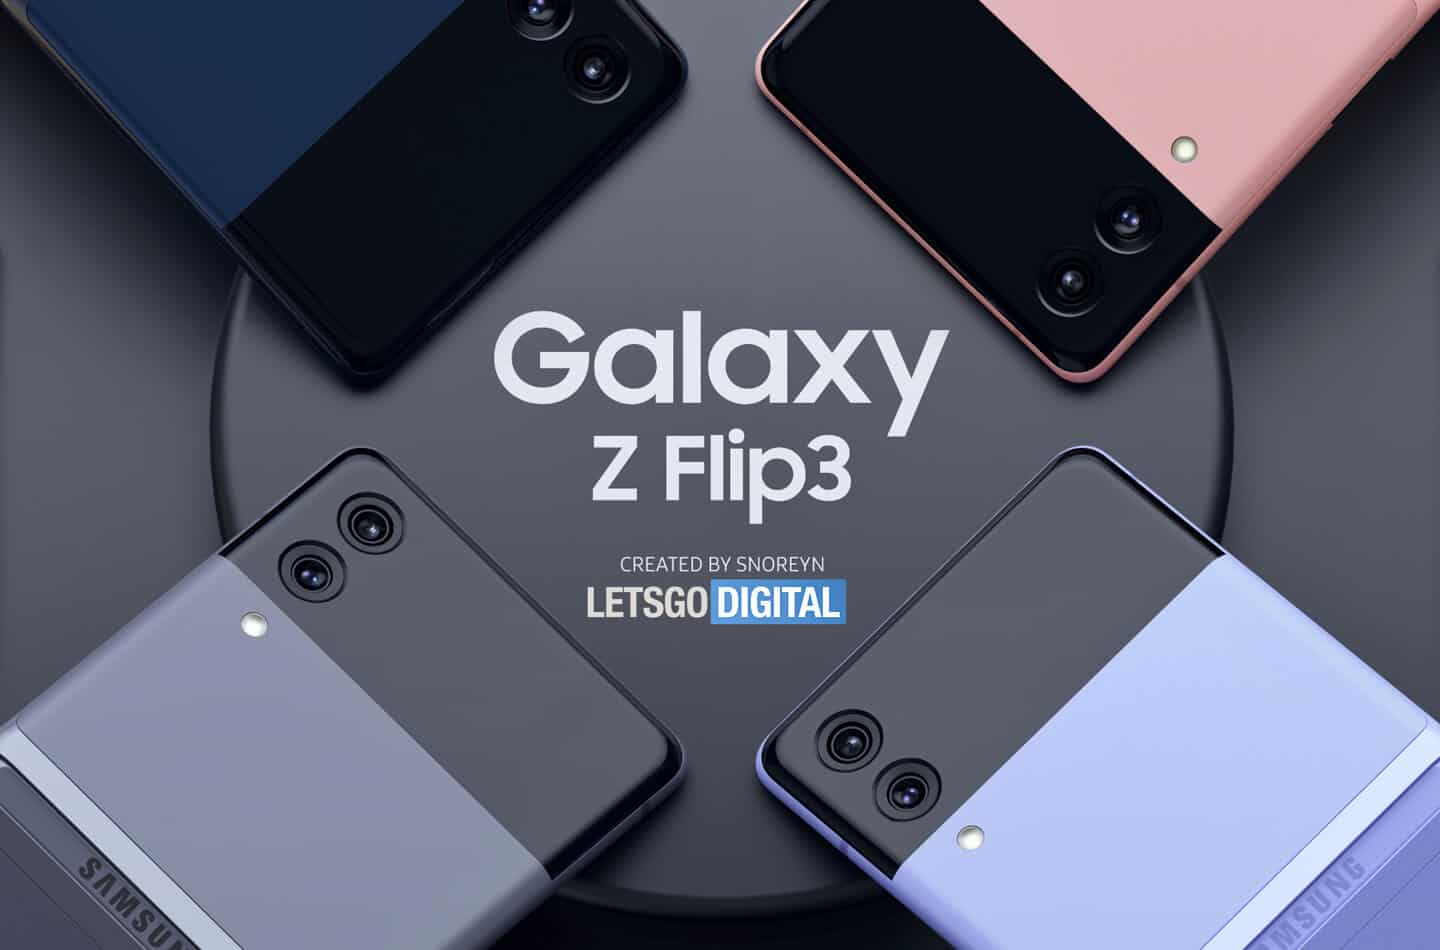 the-galaxy-z-philip-3-was-probably-200-cheaper-than-its-predecessor-at-1249 - چیکاو